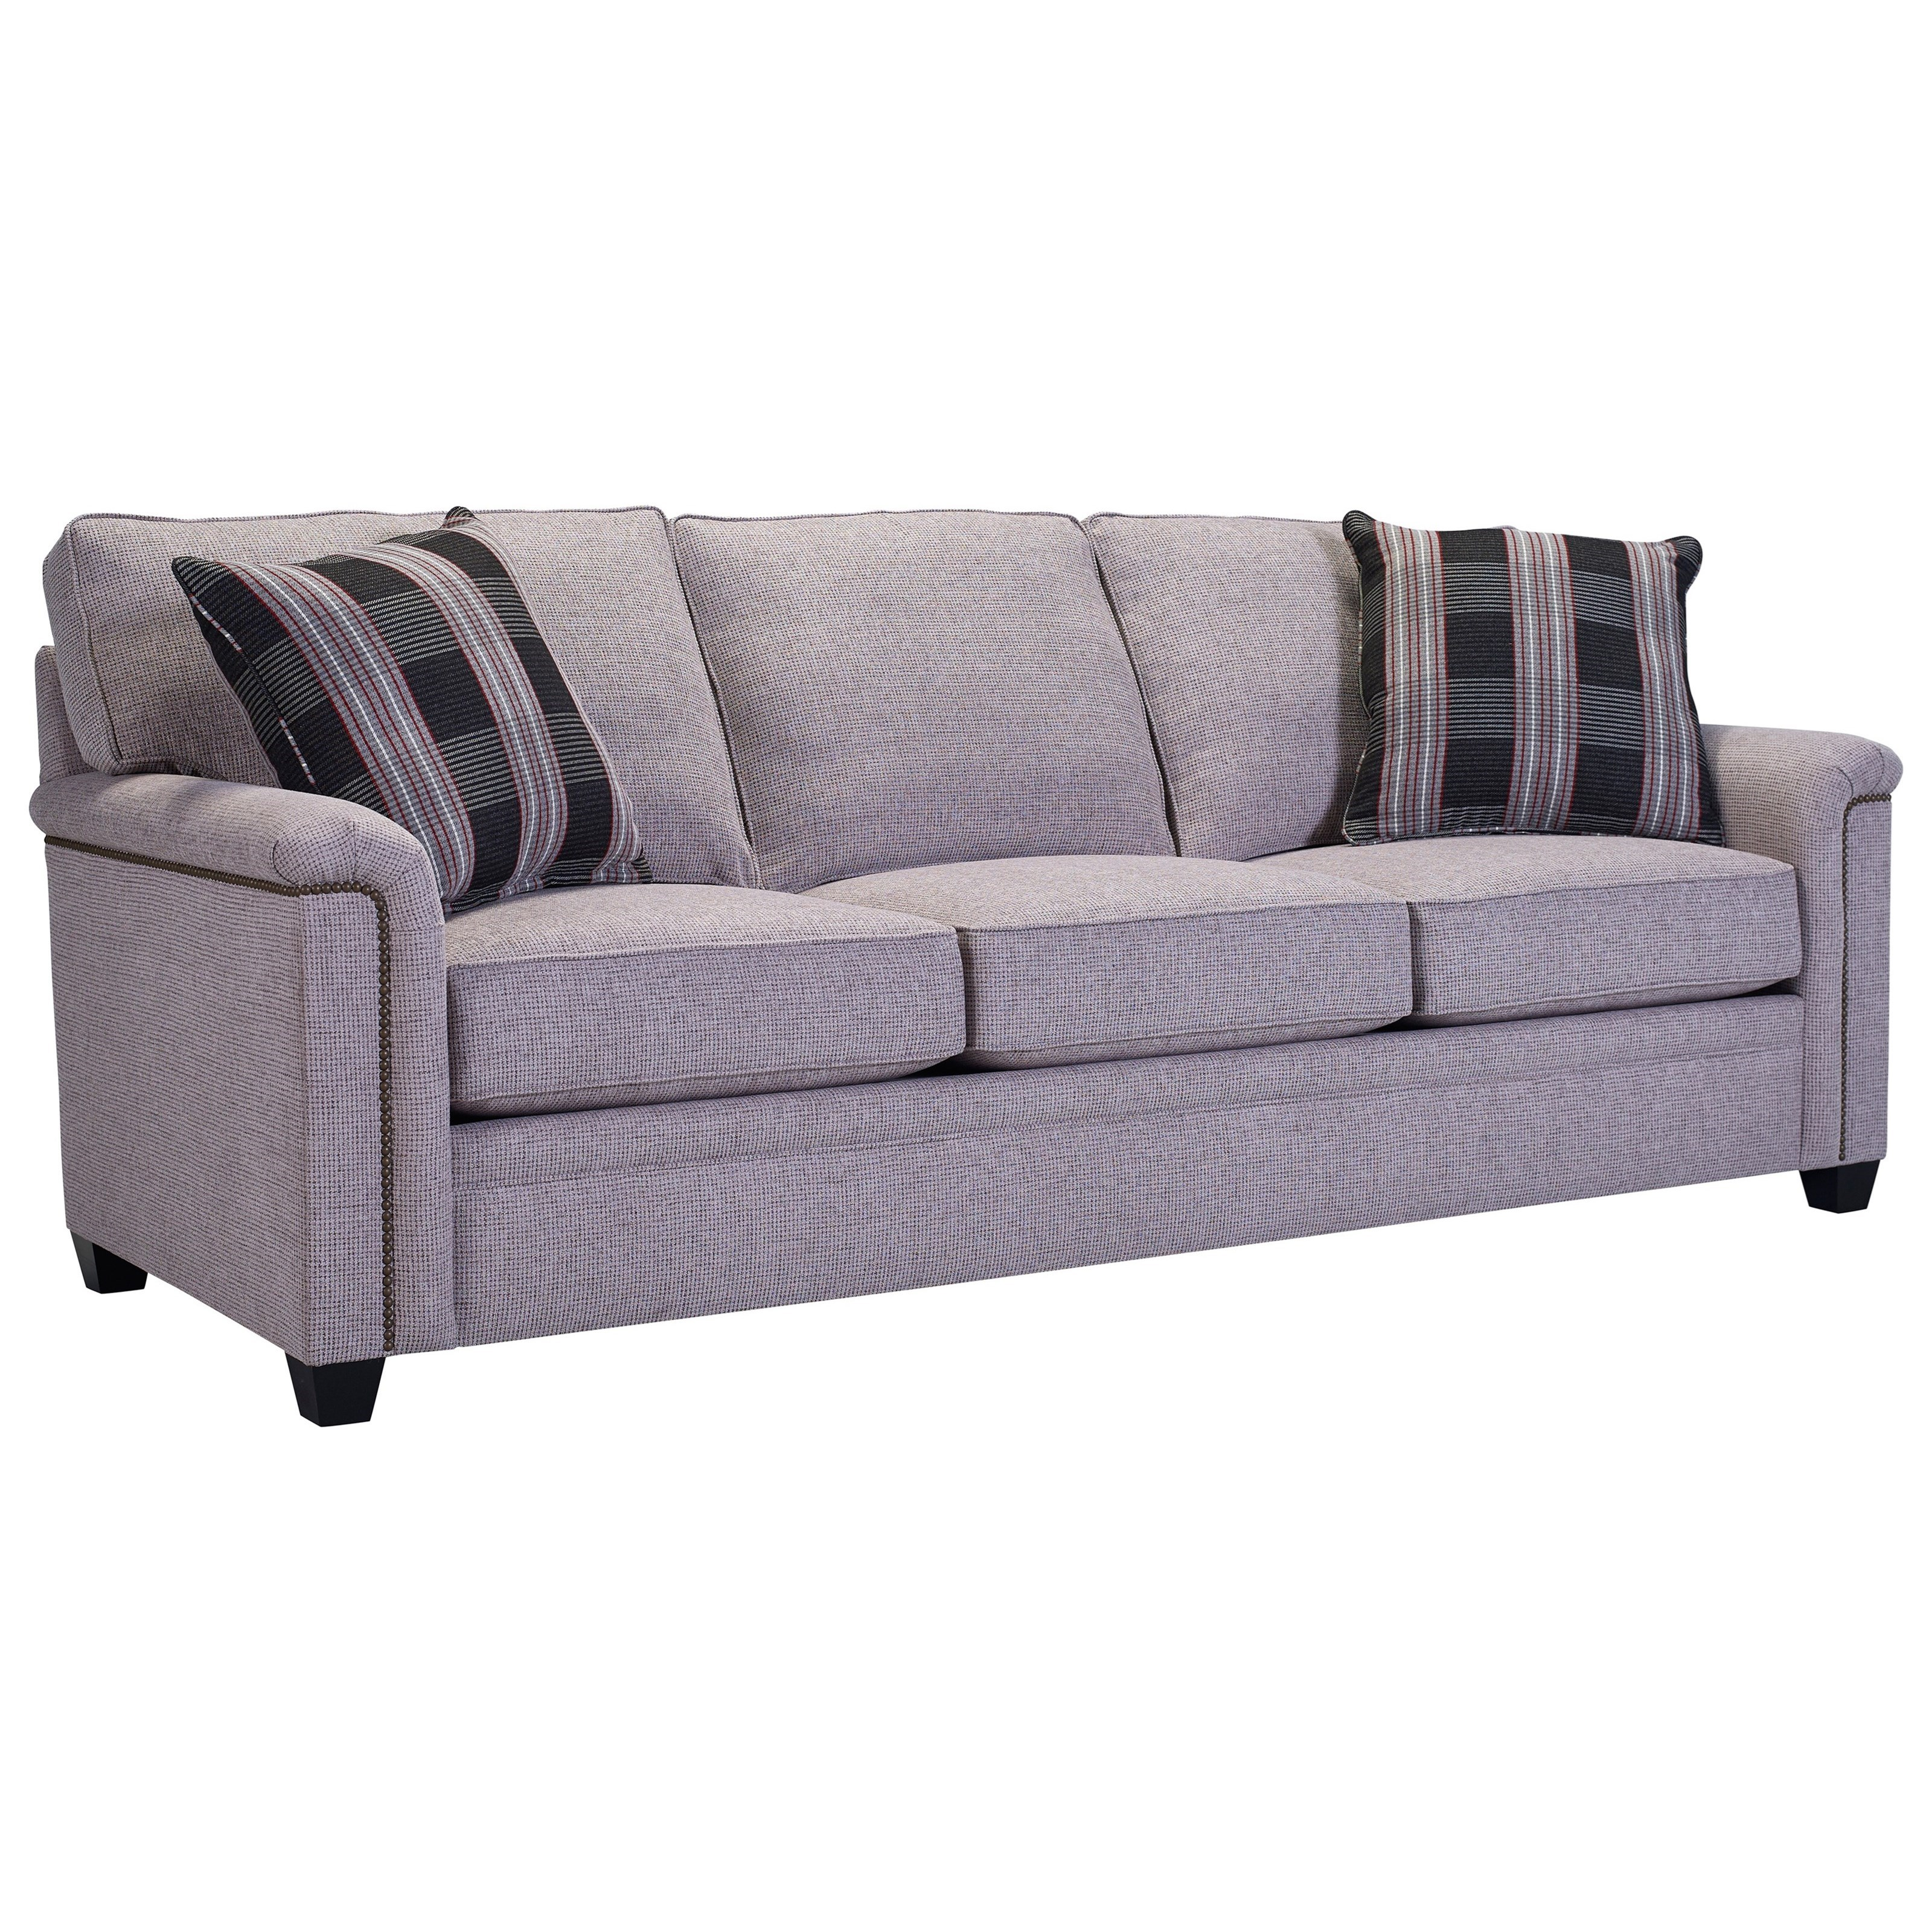 broyhill sleeper sofa olive green decorating ideas furniture warren with nailhead trim accents w goodnight mattress item number 4287 7